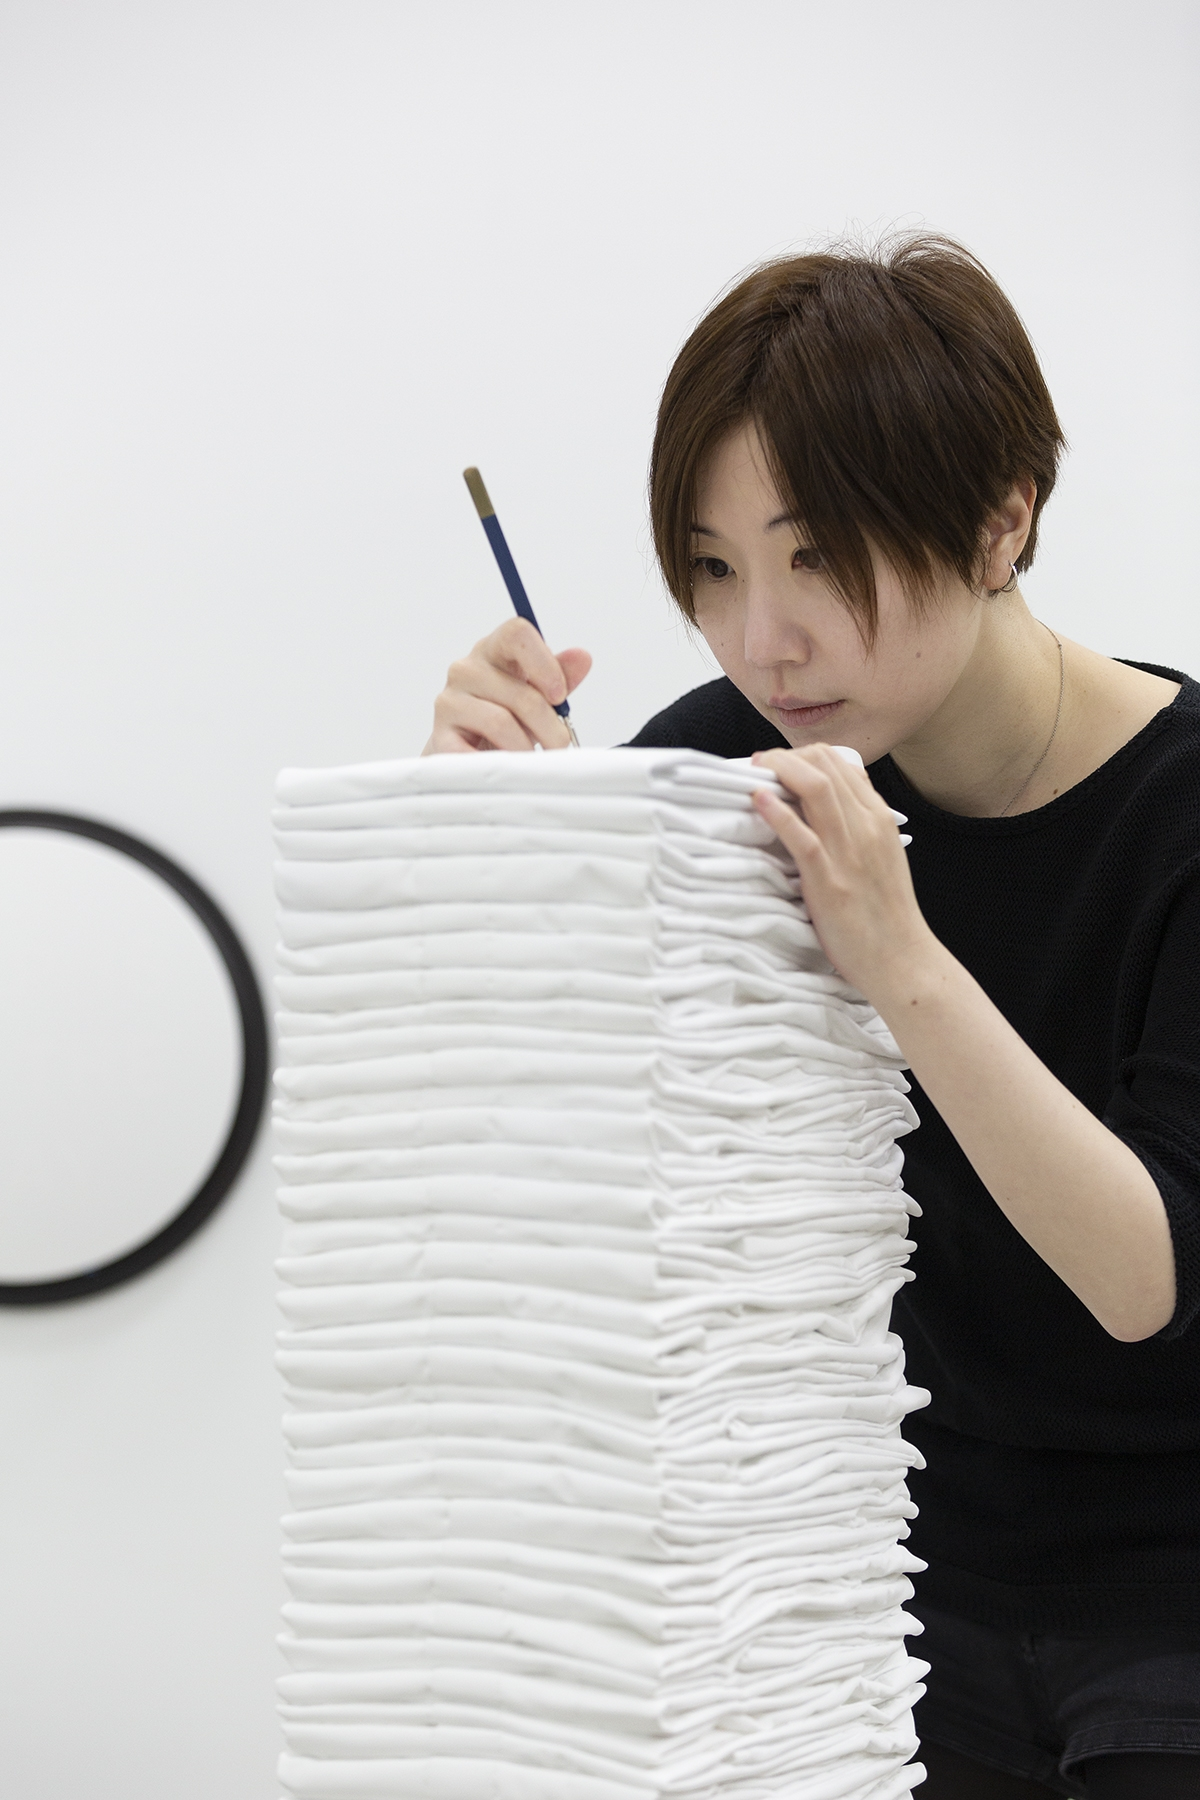 A person wearing a dark t-shirt leans on top of a stack of folded white fabric. She holds a pencil and uses it to mark the top of the fabric